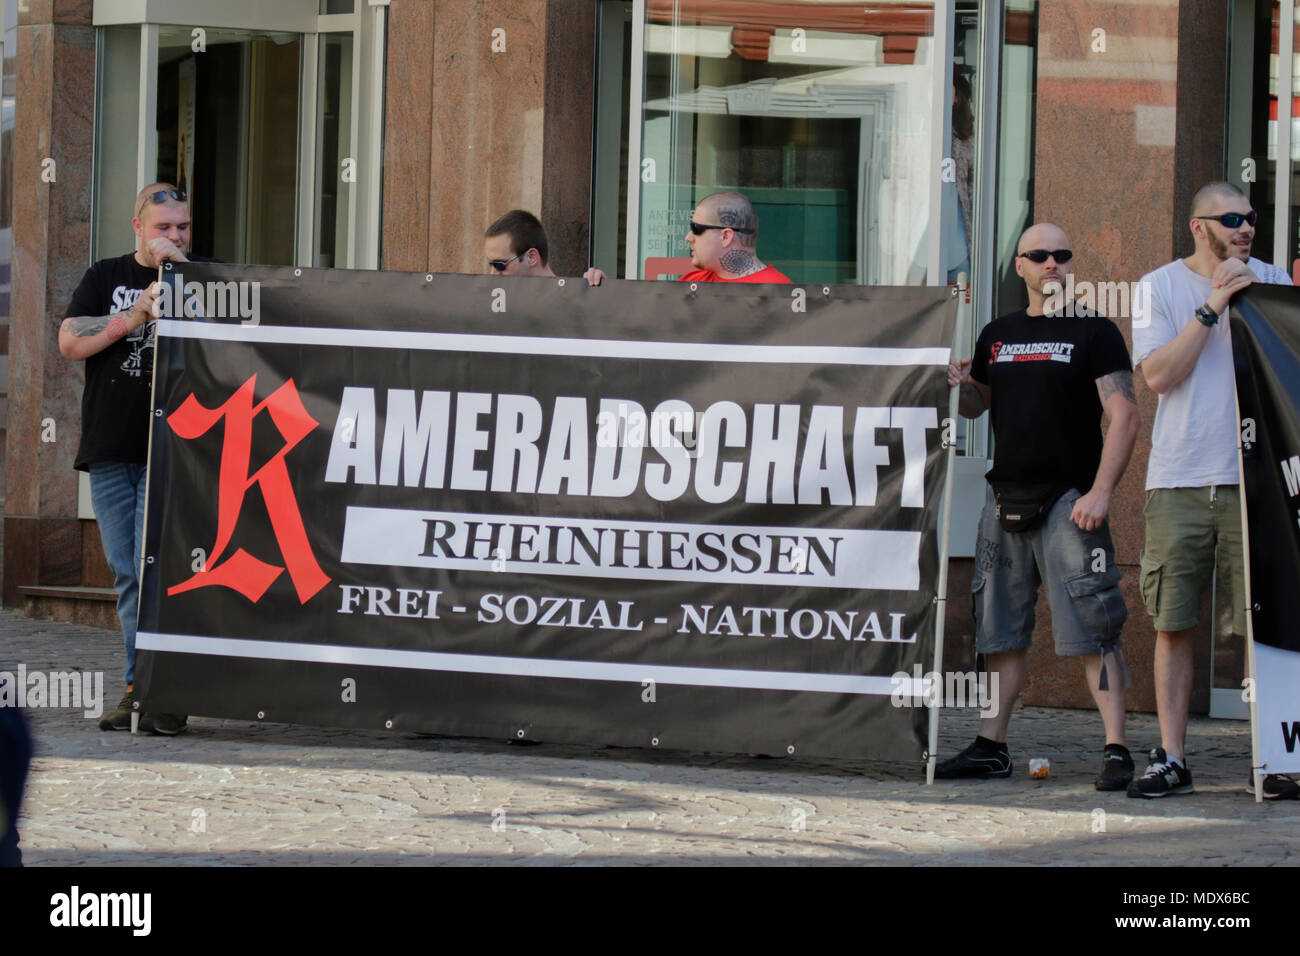 Alzey, Germany. 20th April 2018. Members of the Kameradschaft Rheinhessen (comradeship Rhine-Hesse) hold a banner of their group. A handful of activists from the far right minor party Die Rechte (The Right) and members of right-wing comradeships hold a vigil in the Rhenish Hessian city of Alzey under the slogan 'Multiculturalism kills! Stop foreign infiltration!' against immigration and foreigners. The protest took part on the birthday of Adolf Hitler. The protested was confronted by a counter-protest from different left and democratic groups and parties. Both groups were separated by riot pol - Stock Image